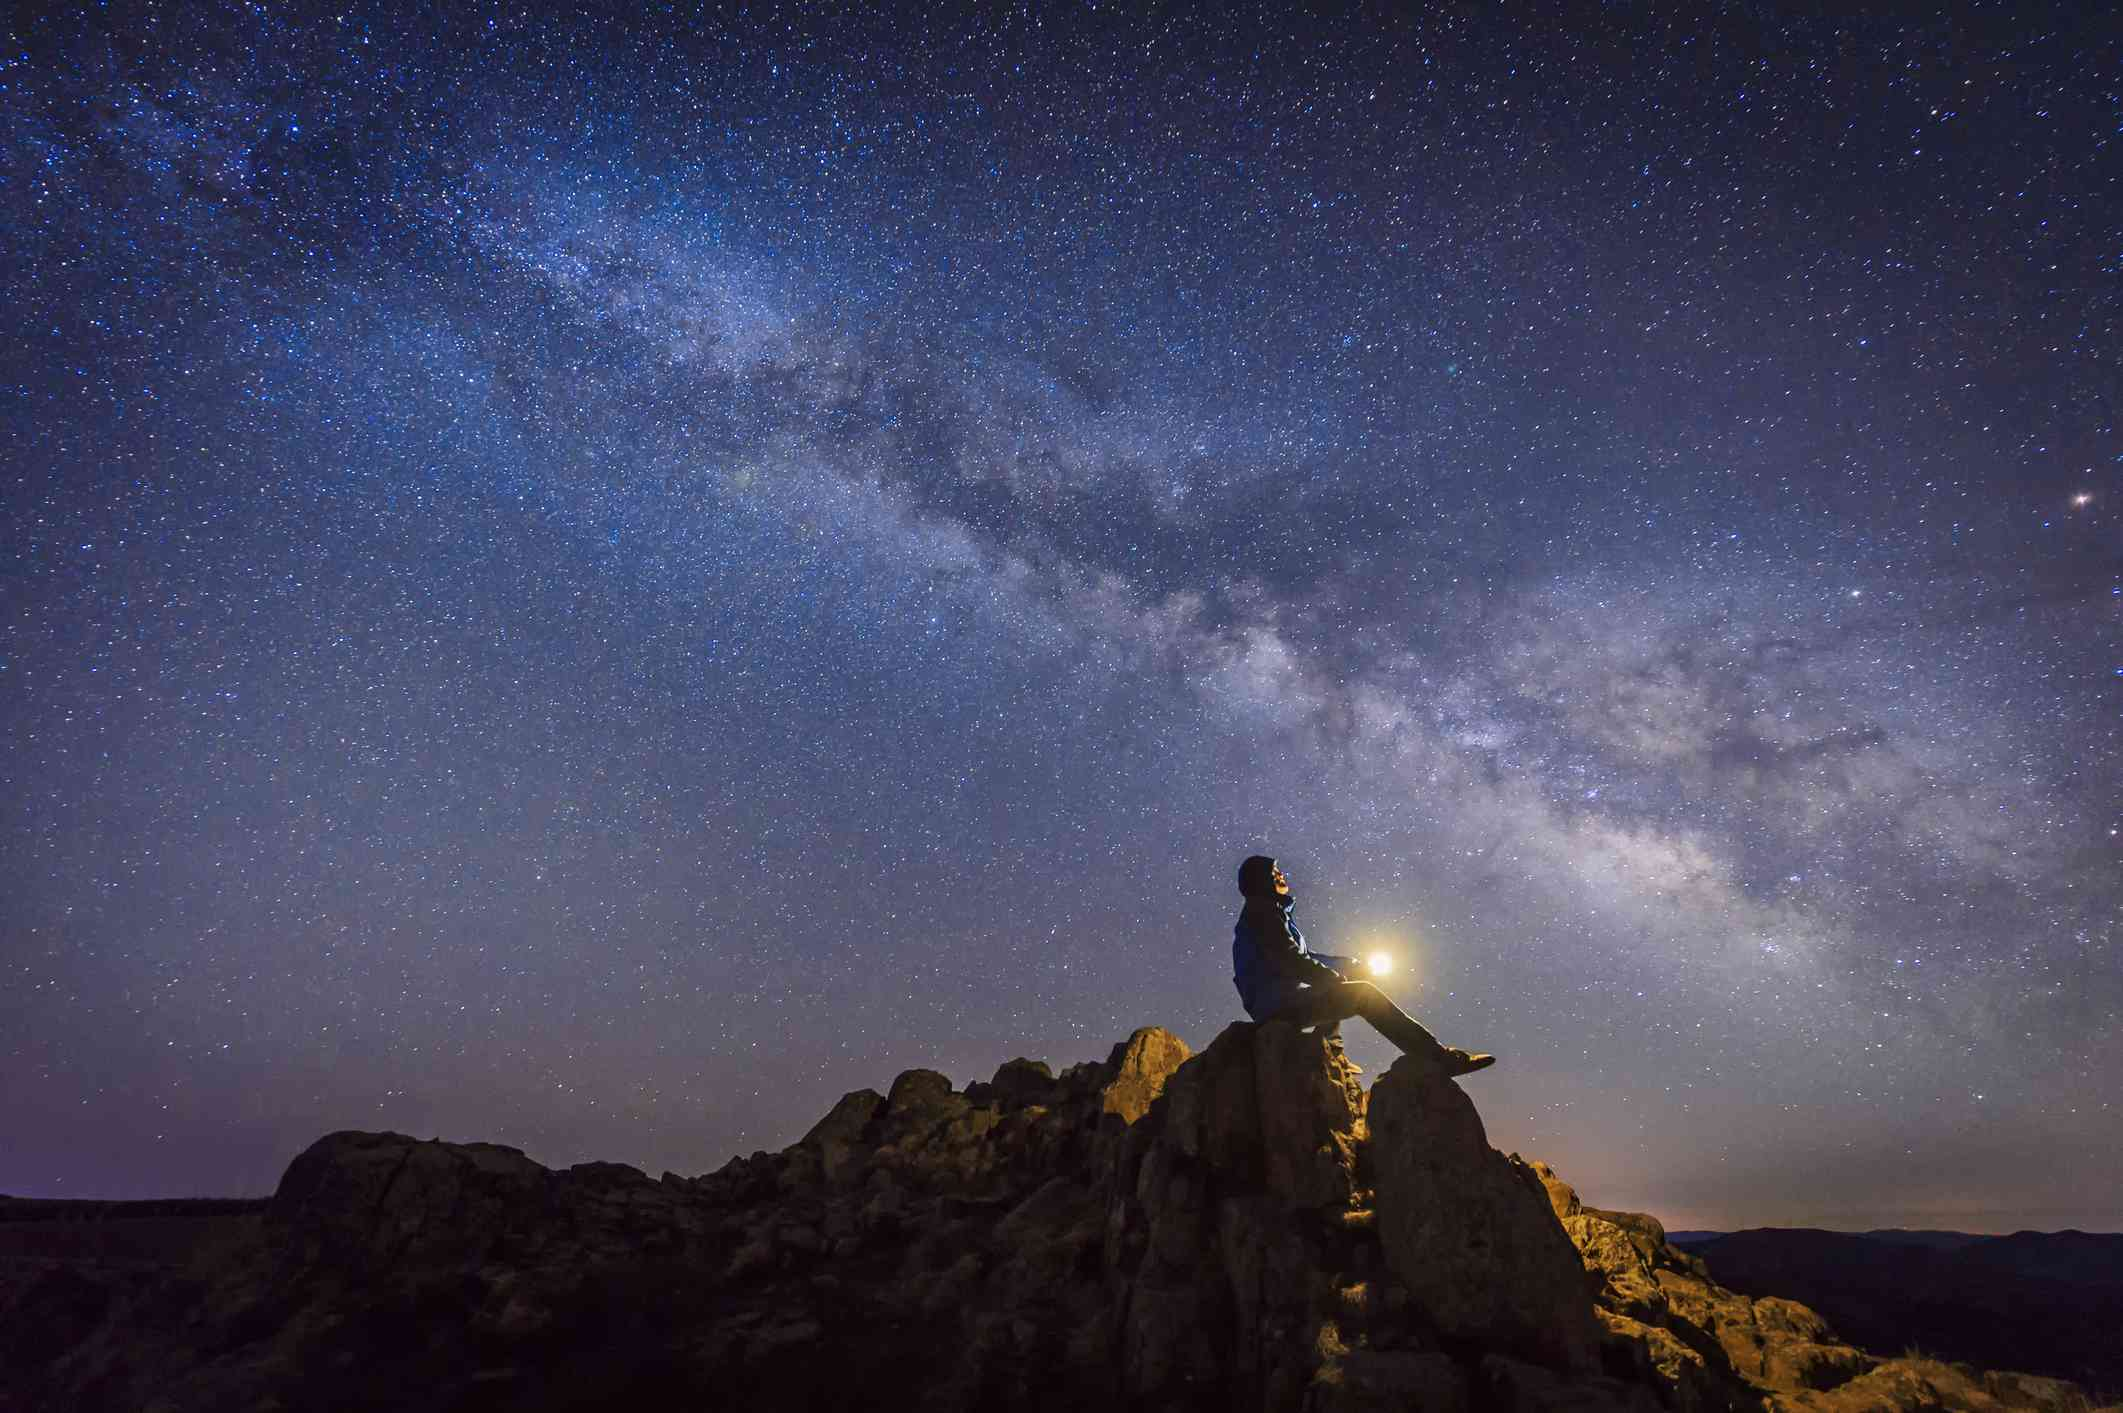 Person sitting under The Milky Way Galaxy with light on their hands.